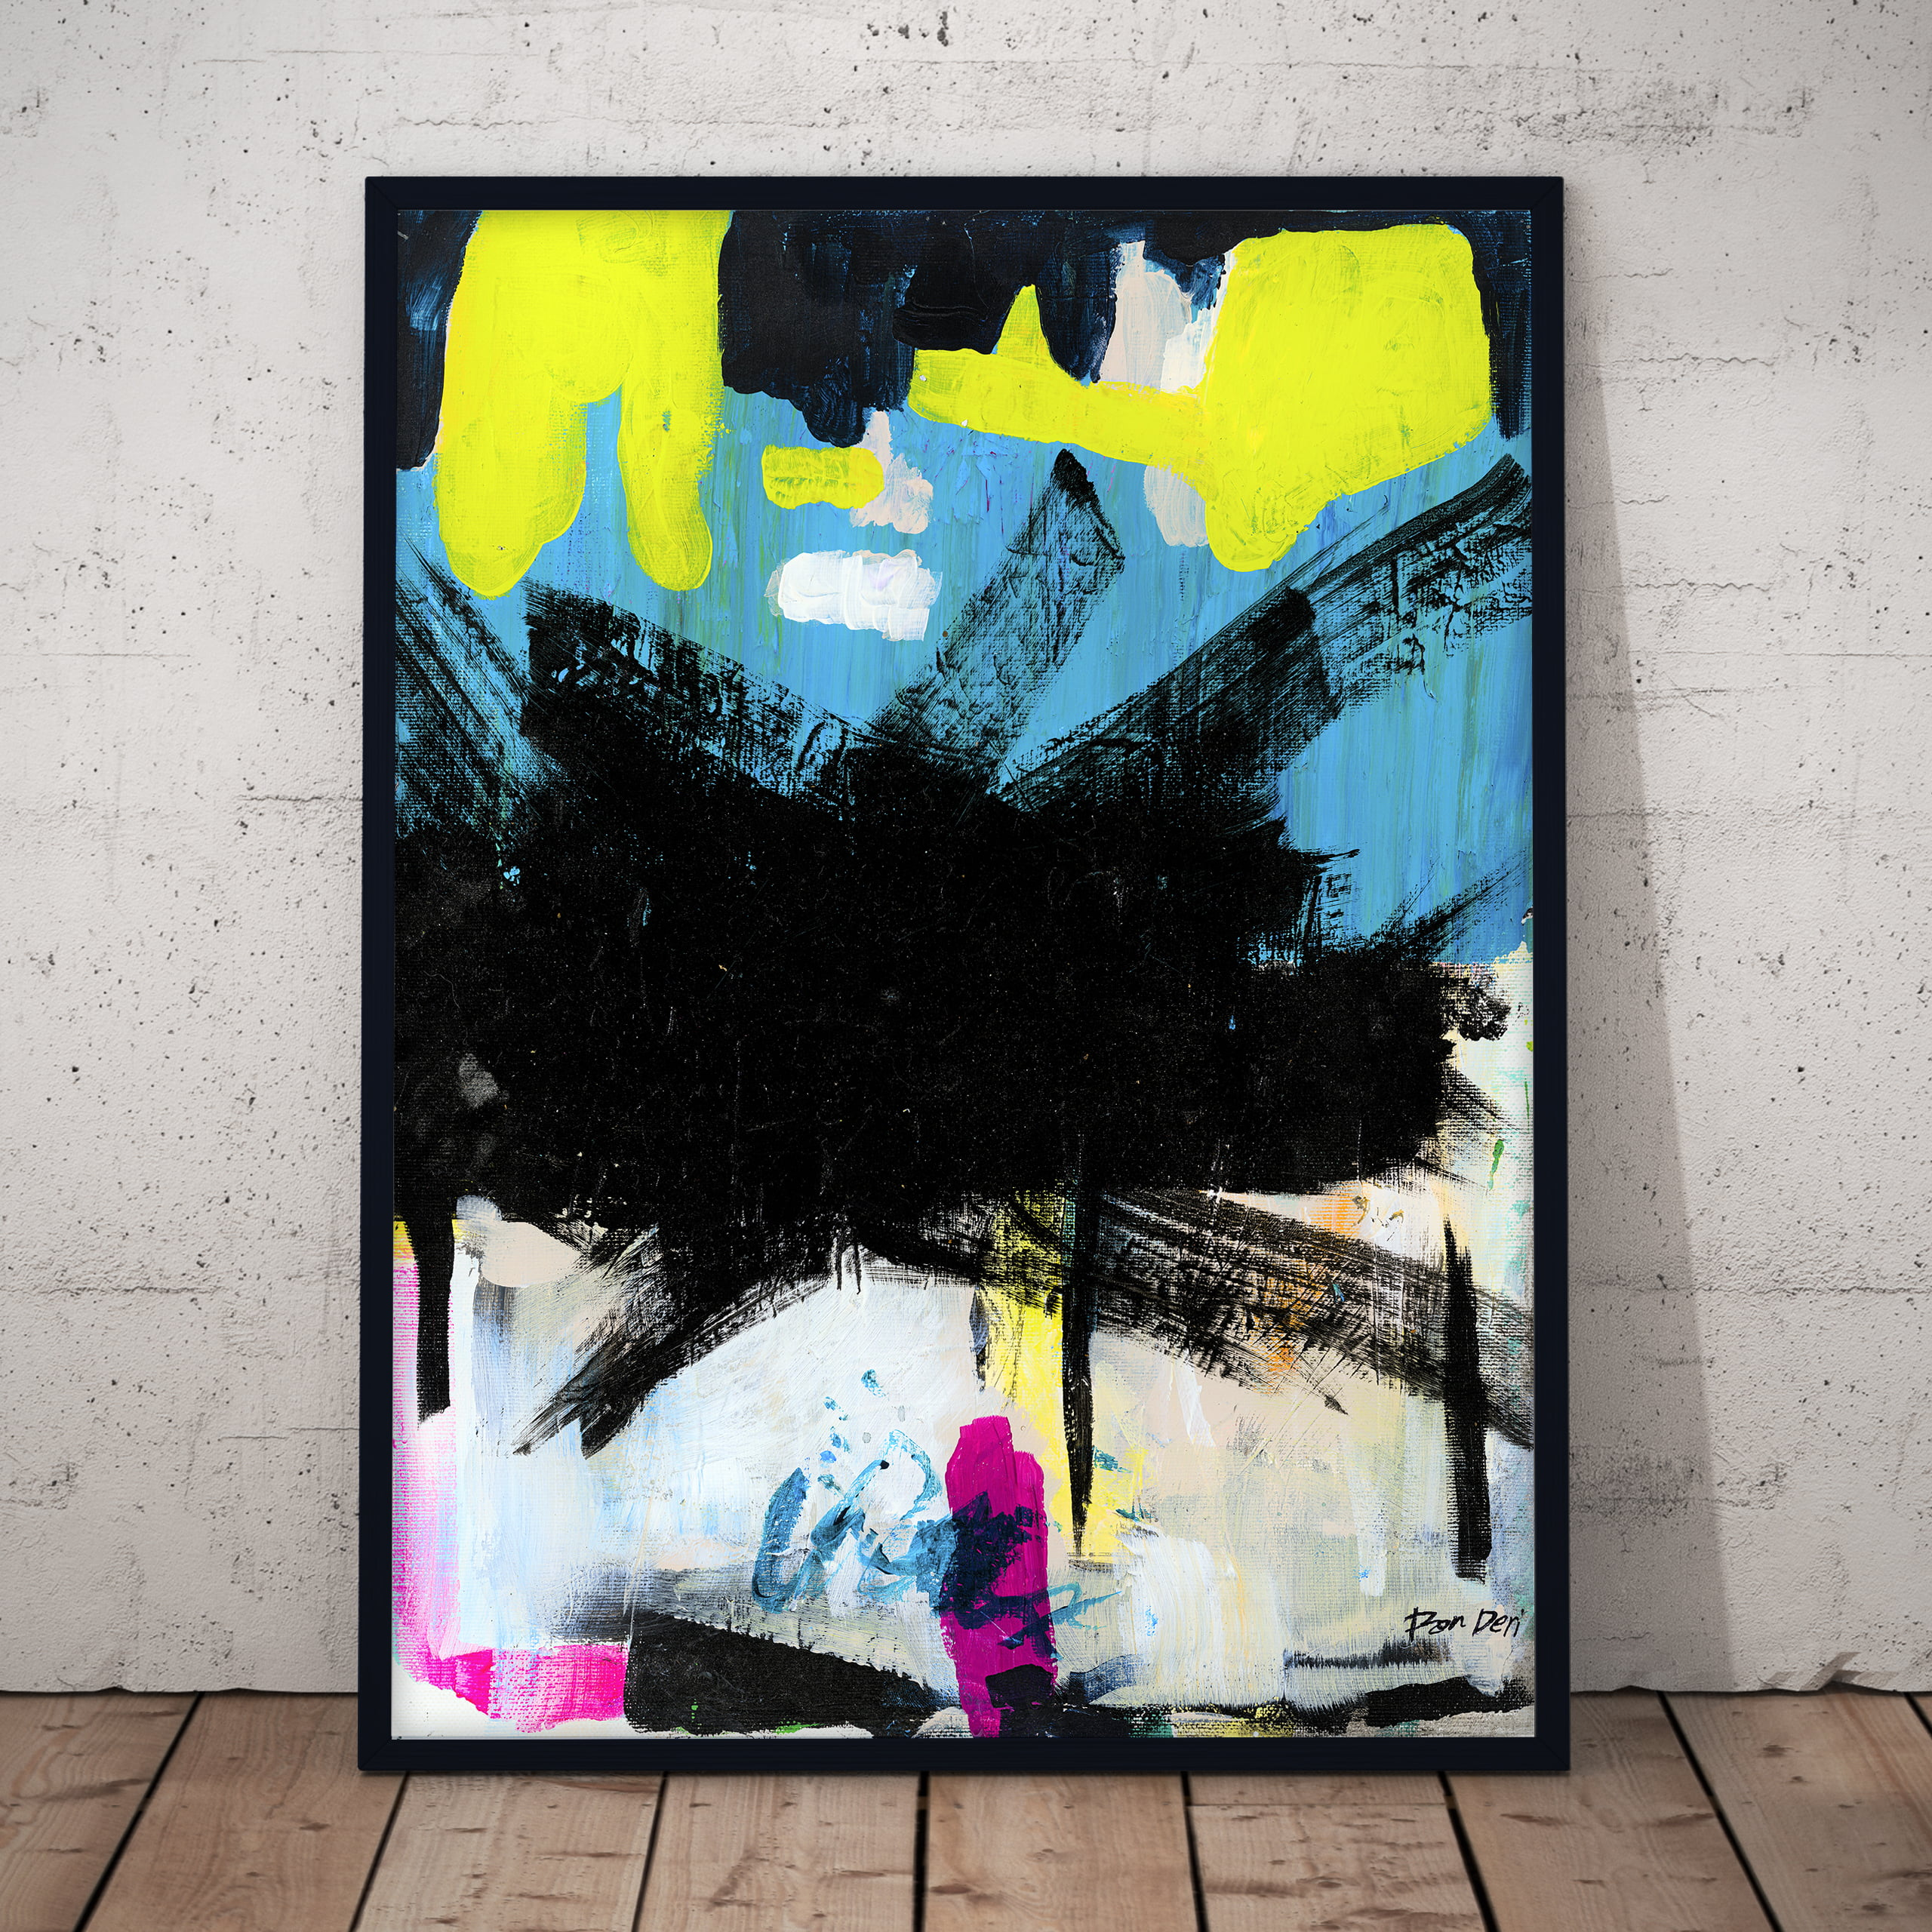 loft new york style modern abstract art by ron deri